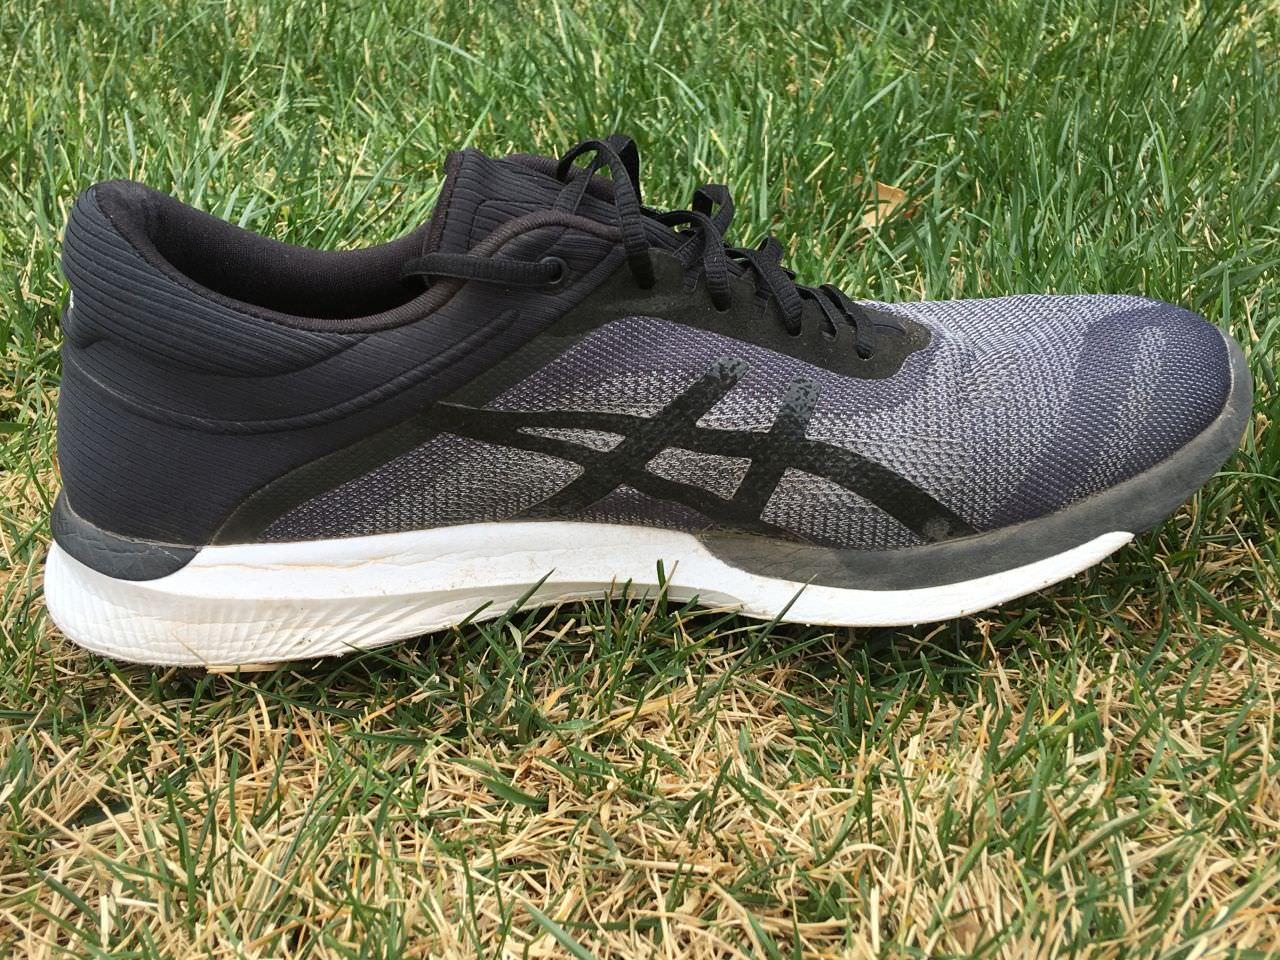 asics fuzex rush men's review